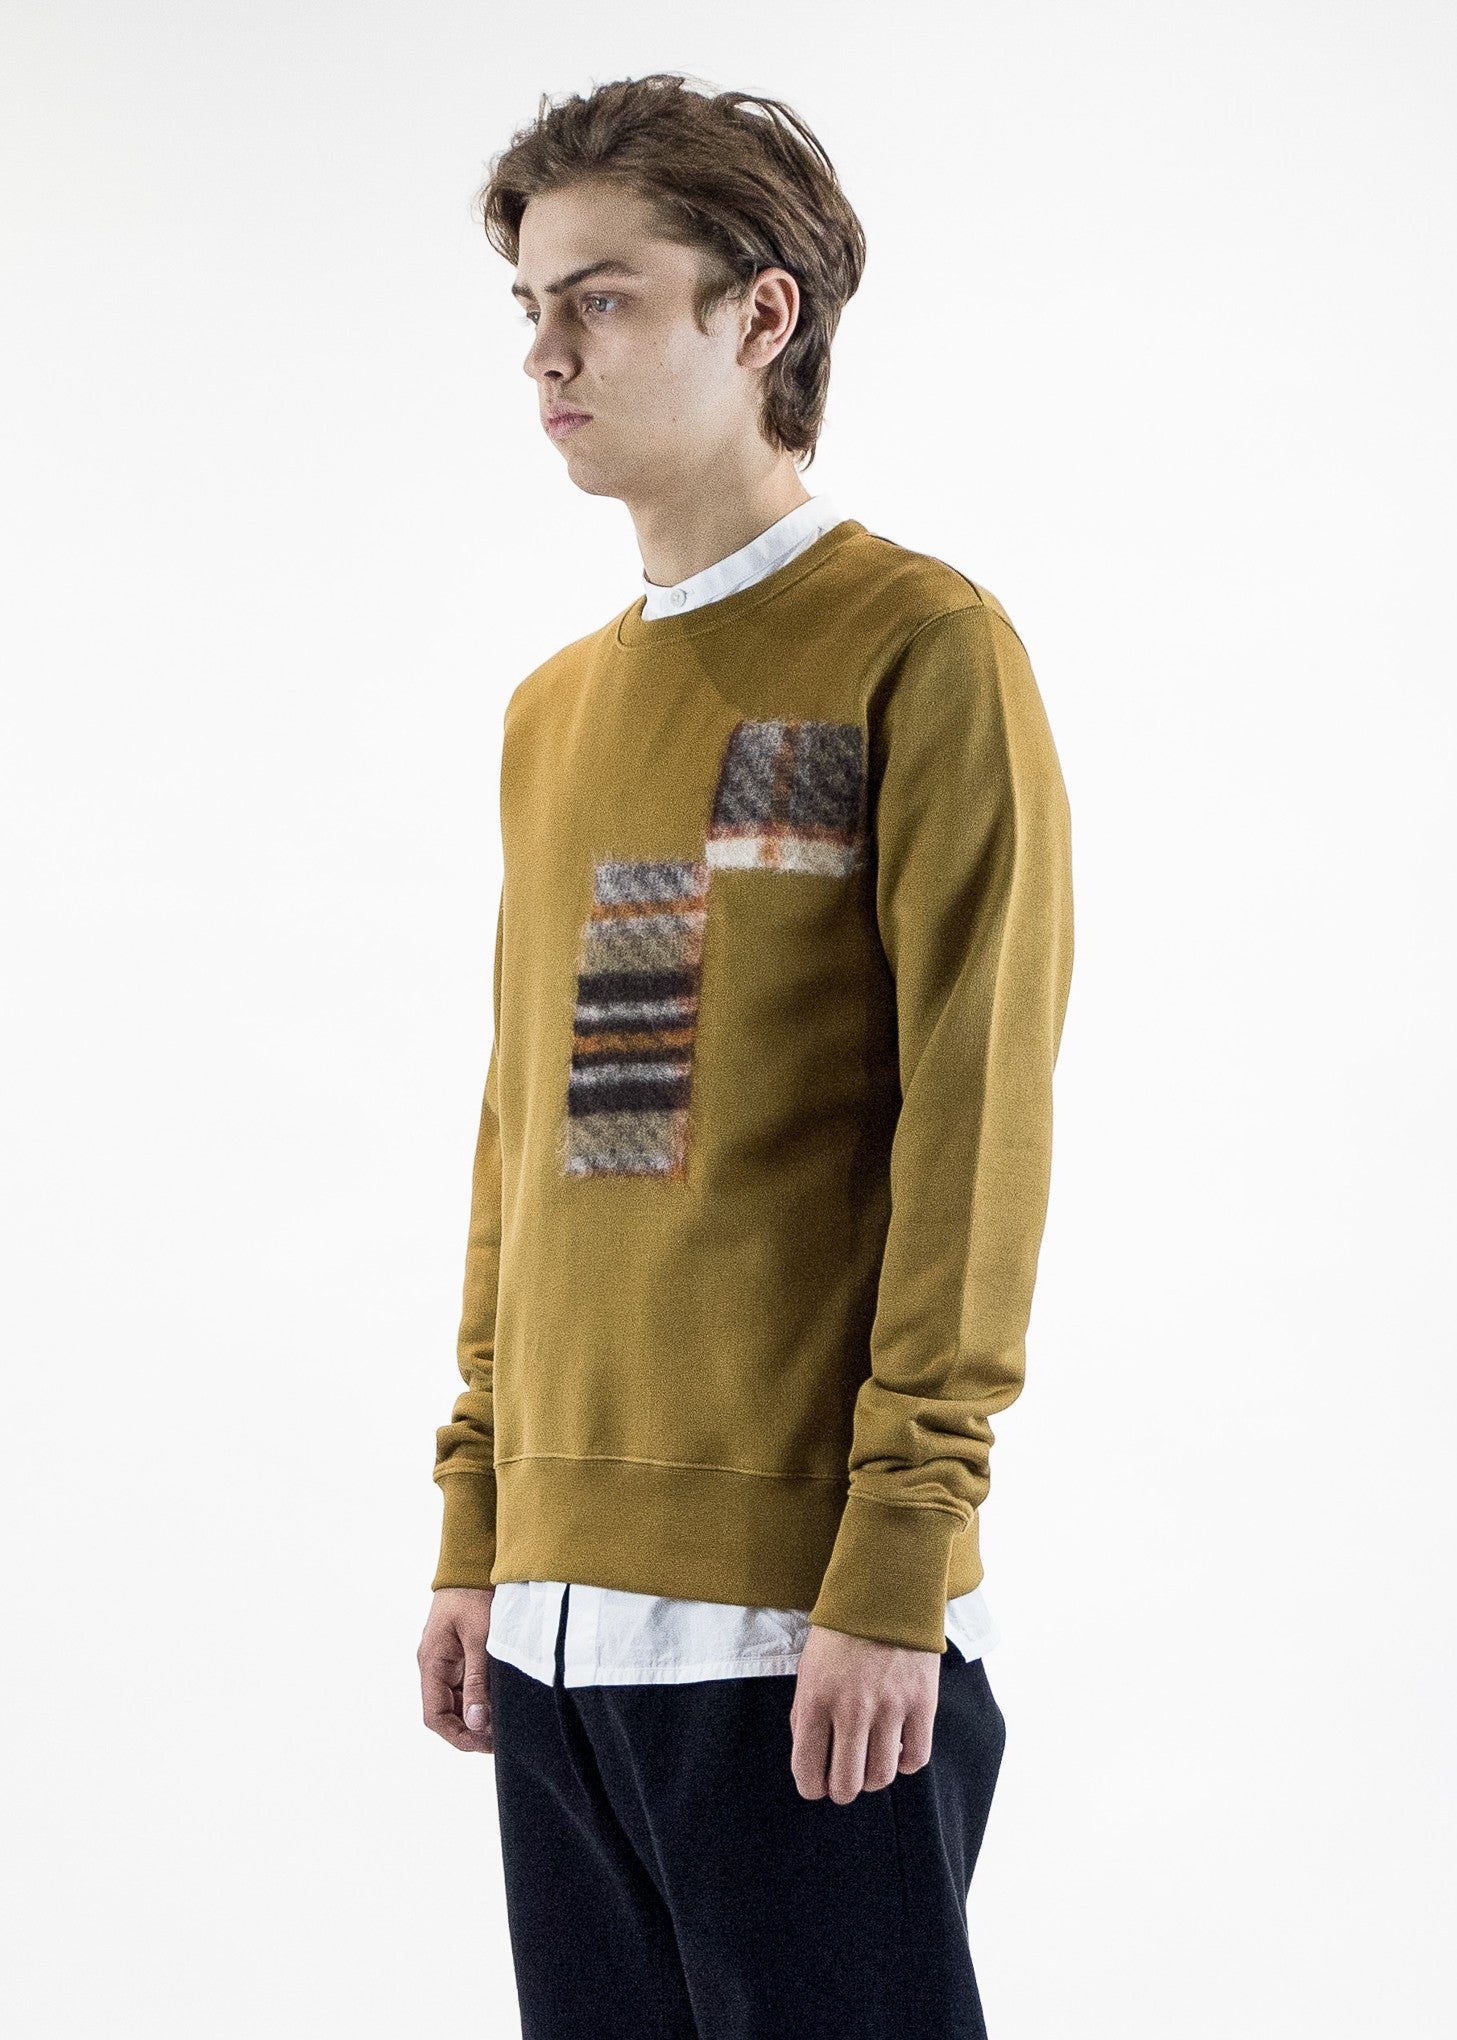 cmmn swdn mens mustard Noah Sweatshirt with Felt Detail